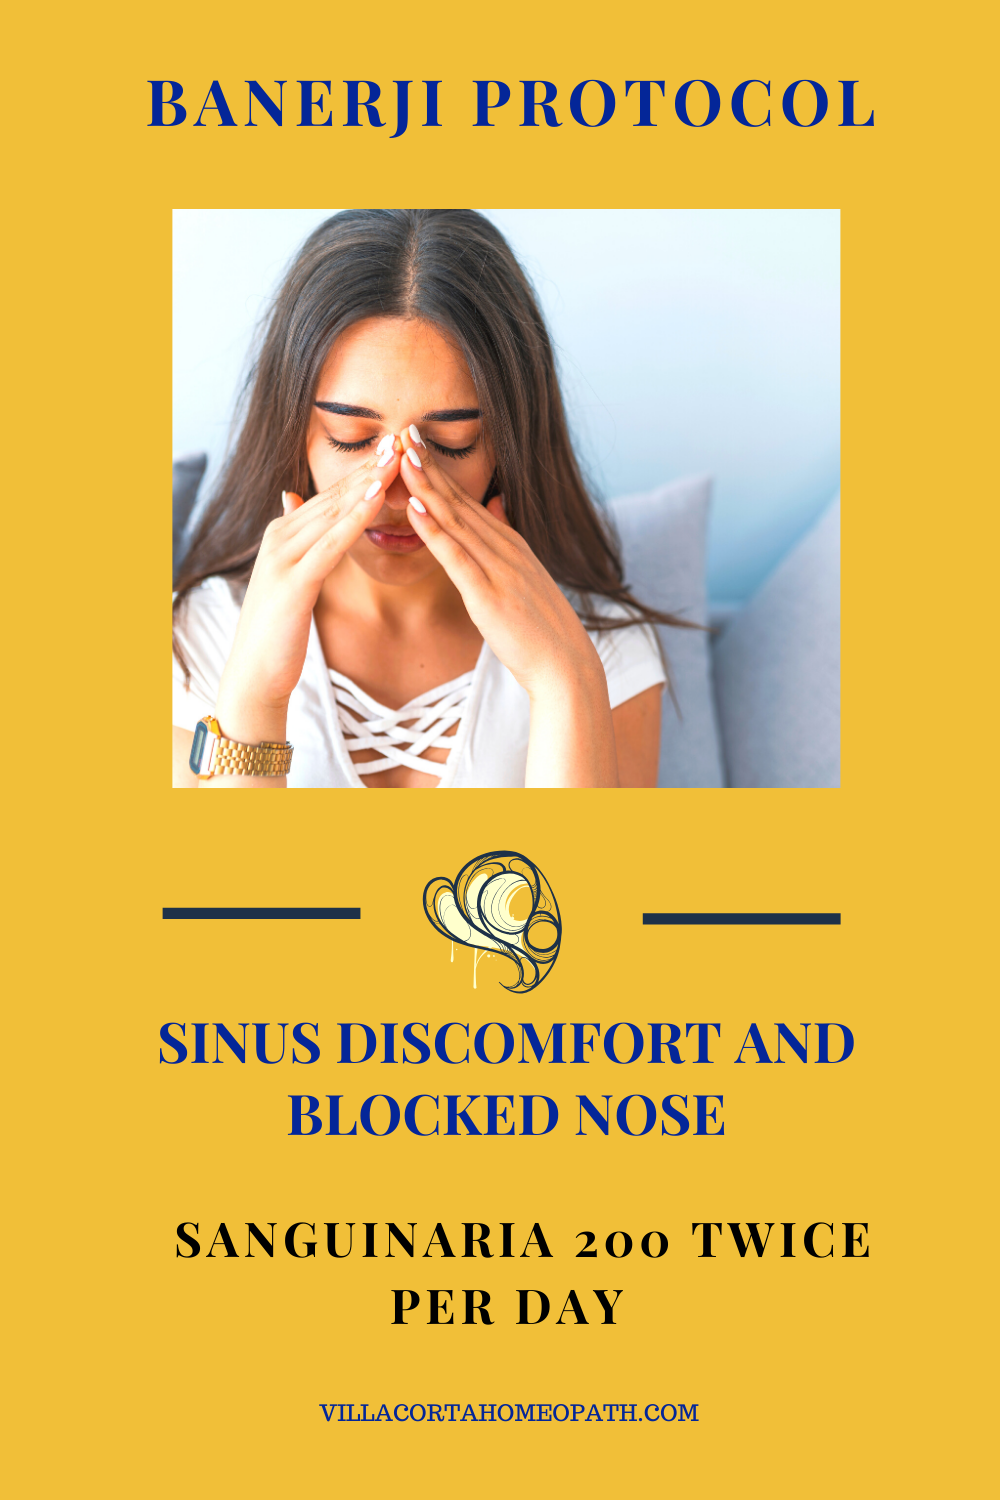 Homeopathic Remedies For Viral Infections Head Colds In 2020 Sinusitis Blocked Sinuses Homeopathic Remedies